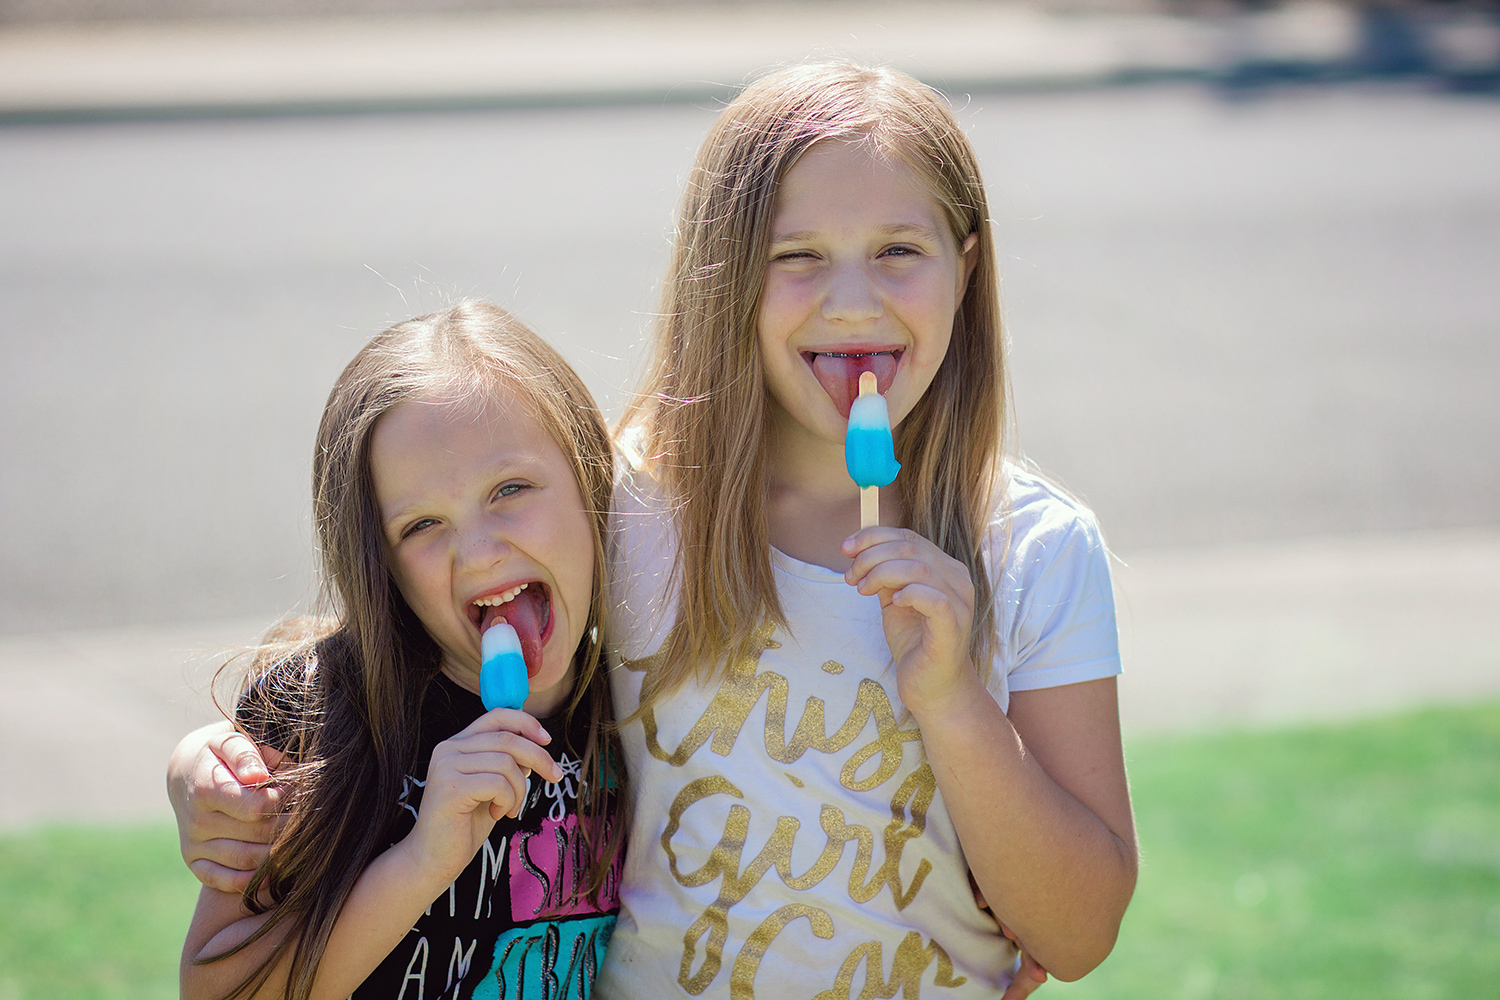 kids eating popsicles - 3 Tips For Photographing Kids in Harsh Light